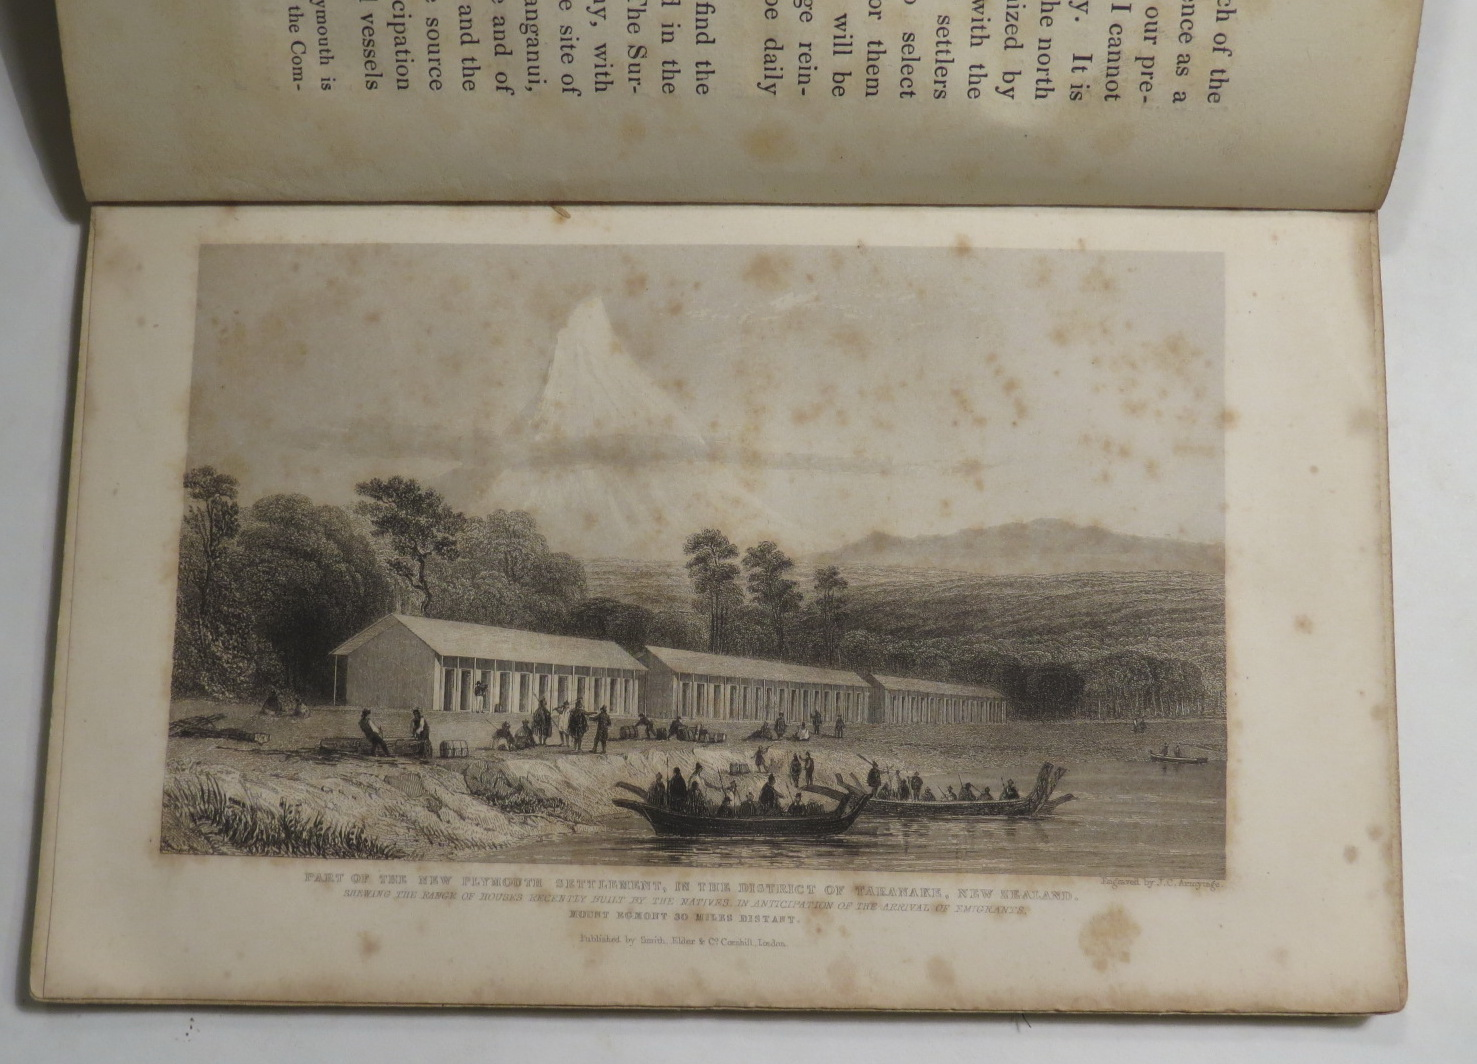 Image for An Account of The Settlements of the New Zealand Company, From Personal Observation During a Residence There